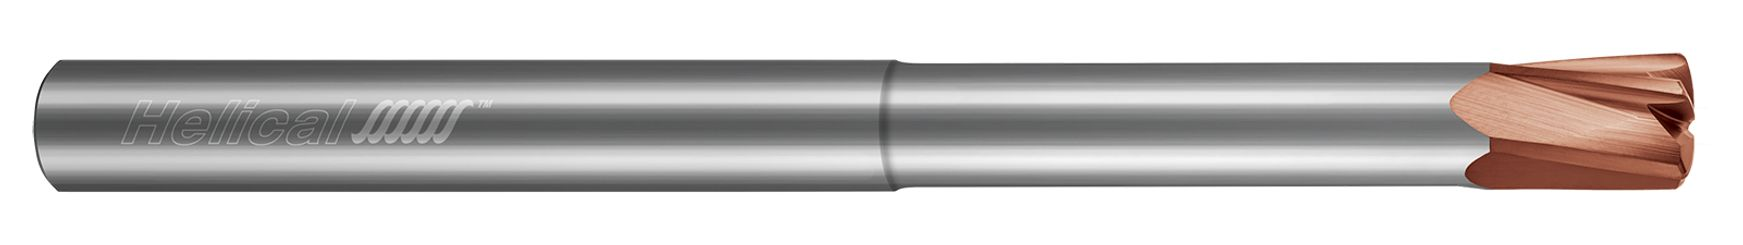 High Feed End Mills - Steels up to 45 Rc - Variable Pitch - Reduced Neck